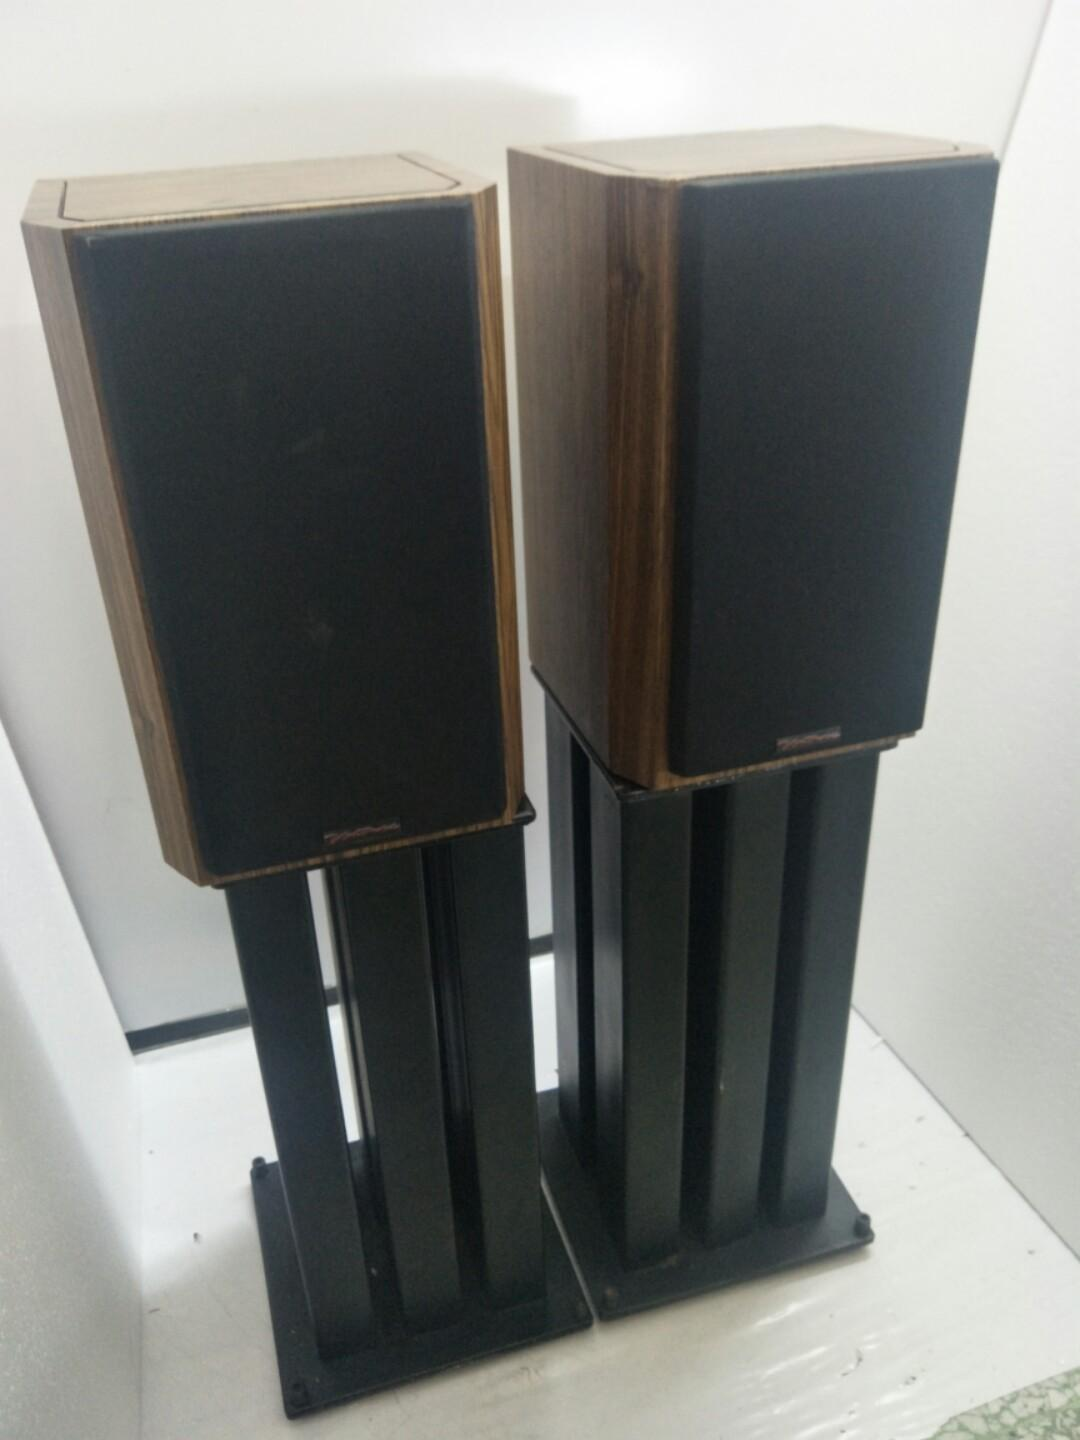 Bic Ventury V62   2ways Bass Reflex Bookshelf Speakers